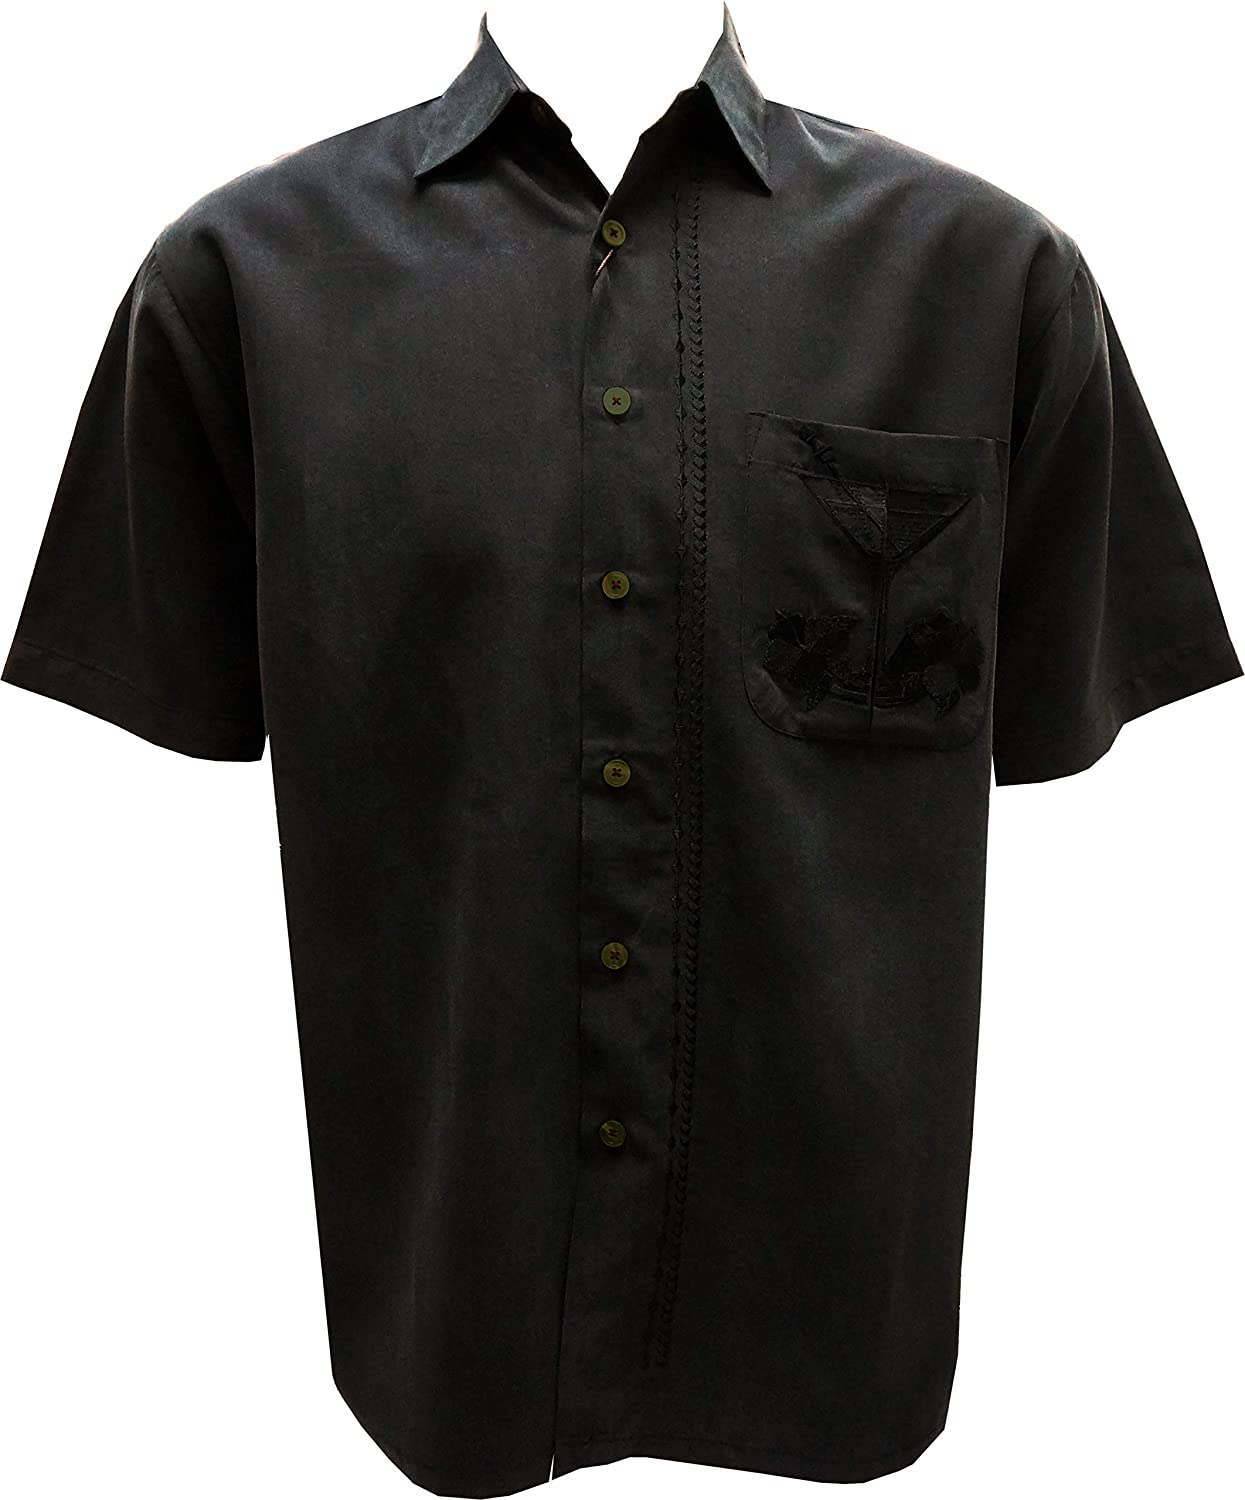 Bamboo Cay Mens Short Sleeve Martini Olivas Casual Embroidered Woven Shirt